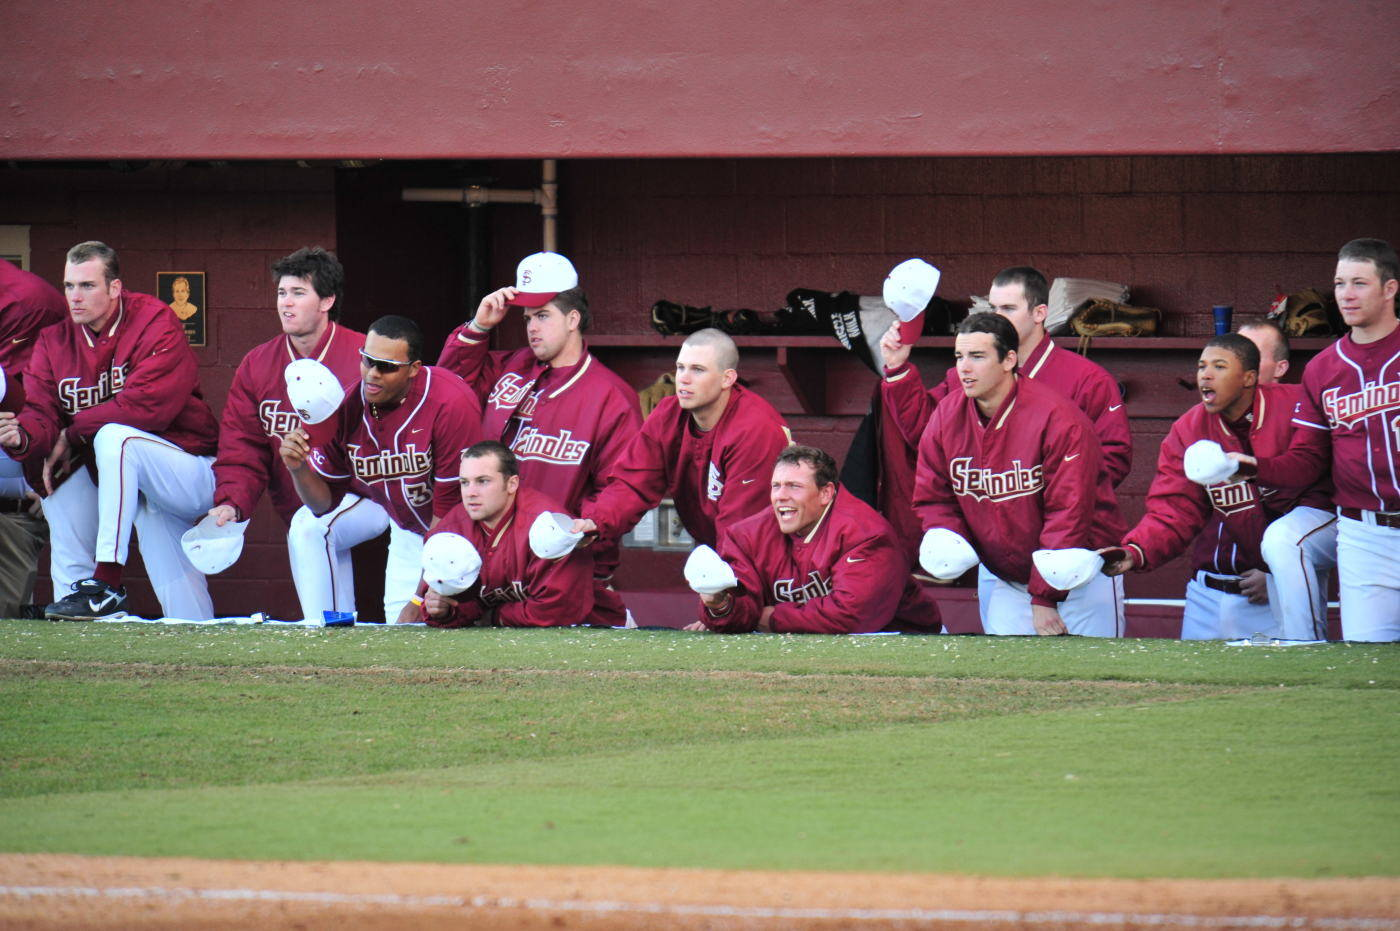 The 2009 Seminole Baseball team